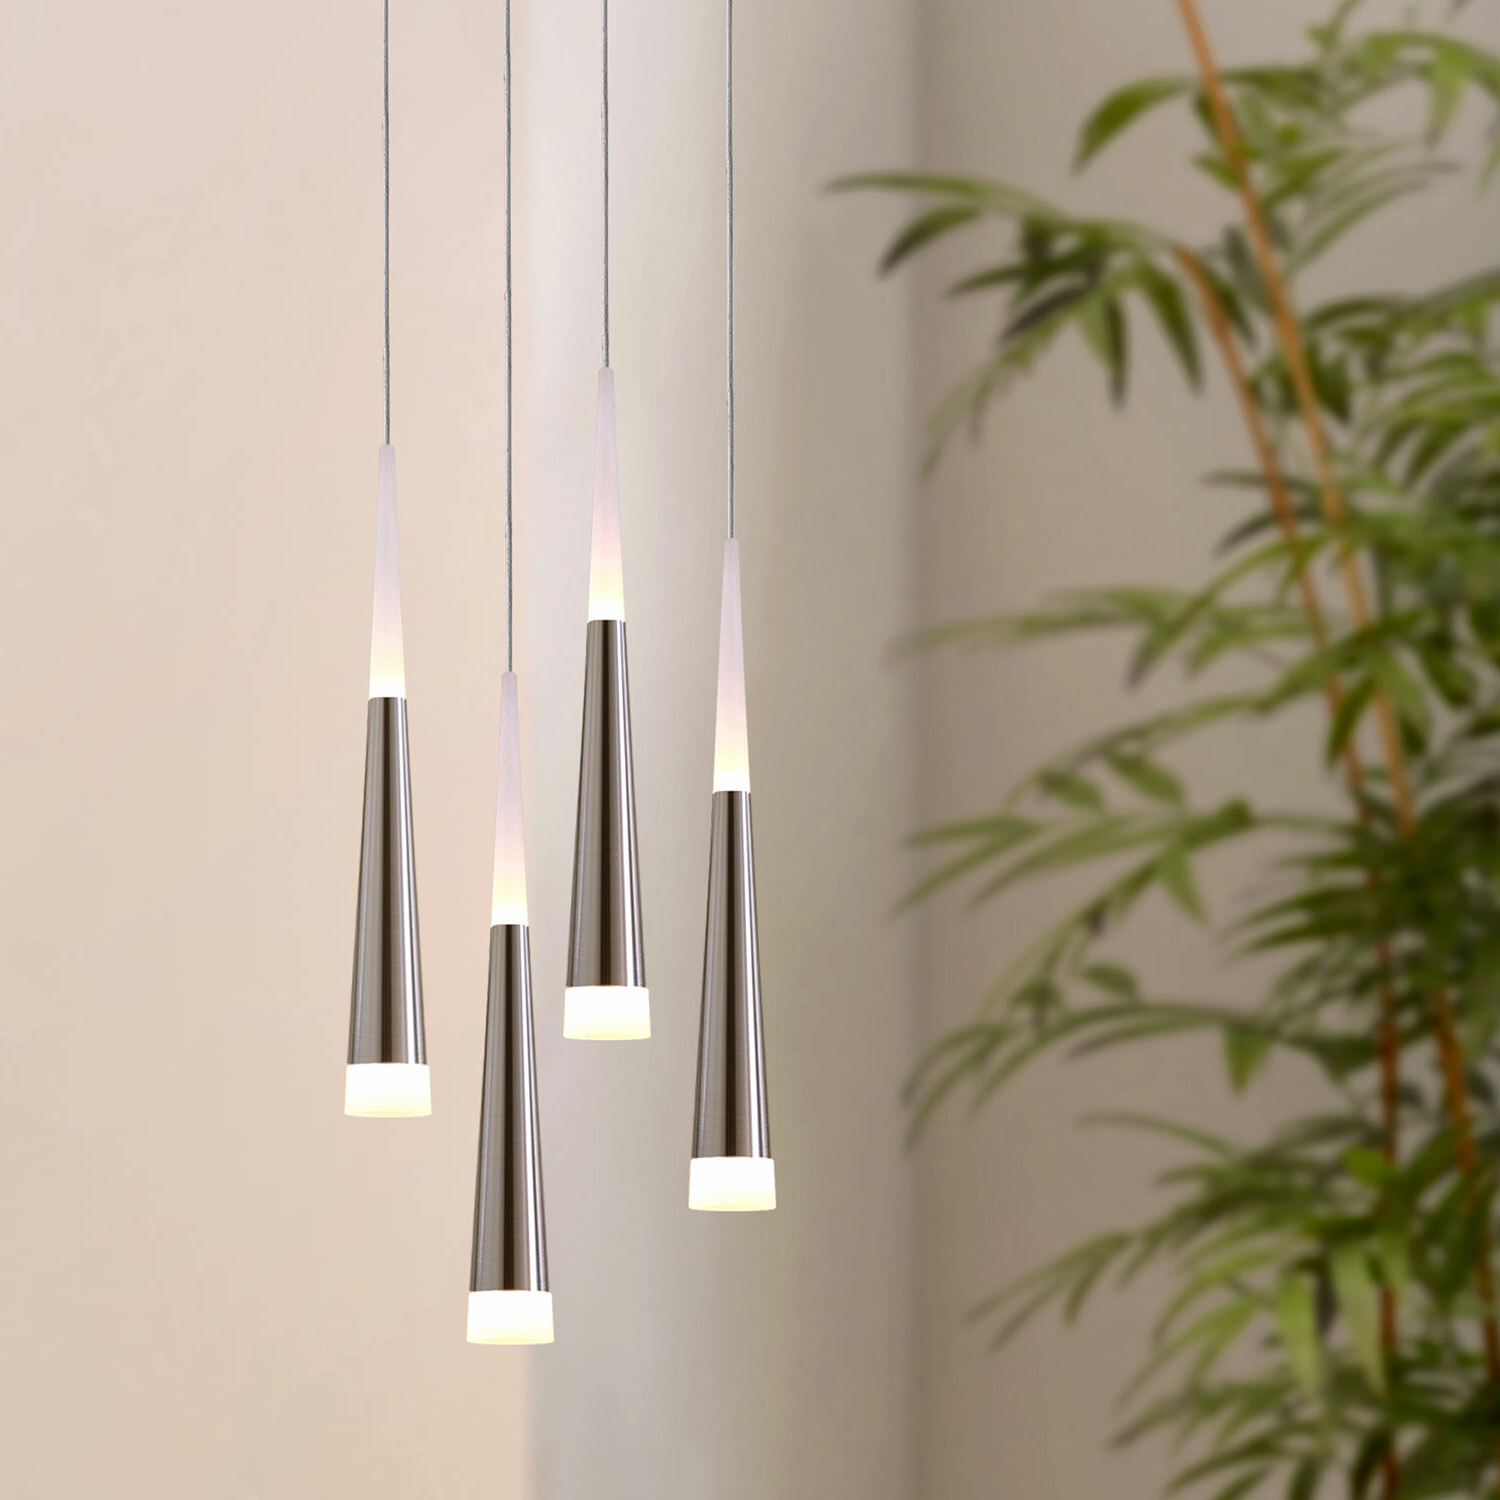 Fashionable Wadley 4 Light Led Cluster Pendant Regarding Schutt 5 Light Cluster Pendants (View 6 of 25)